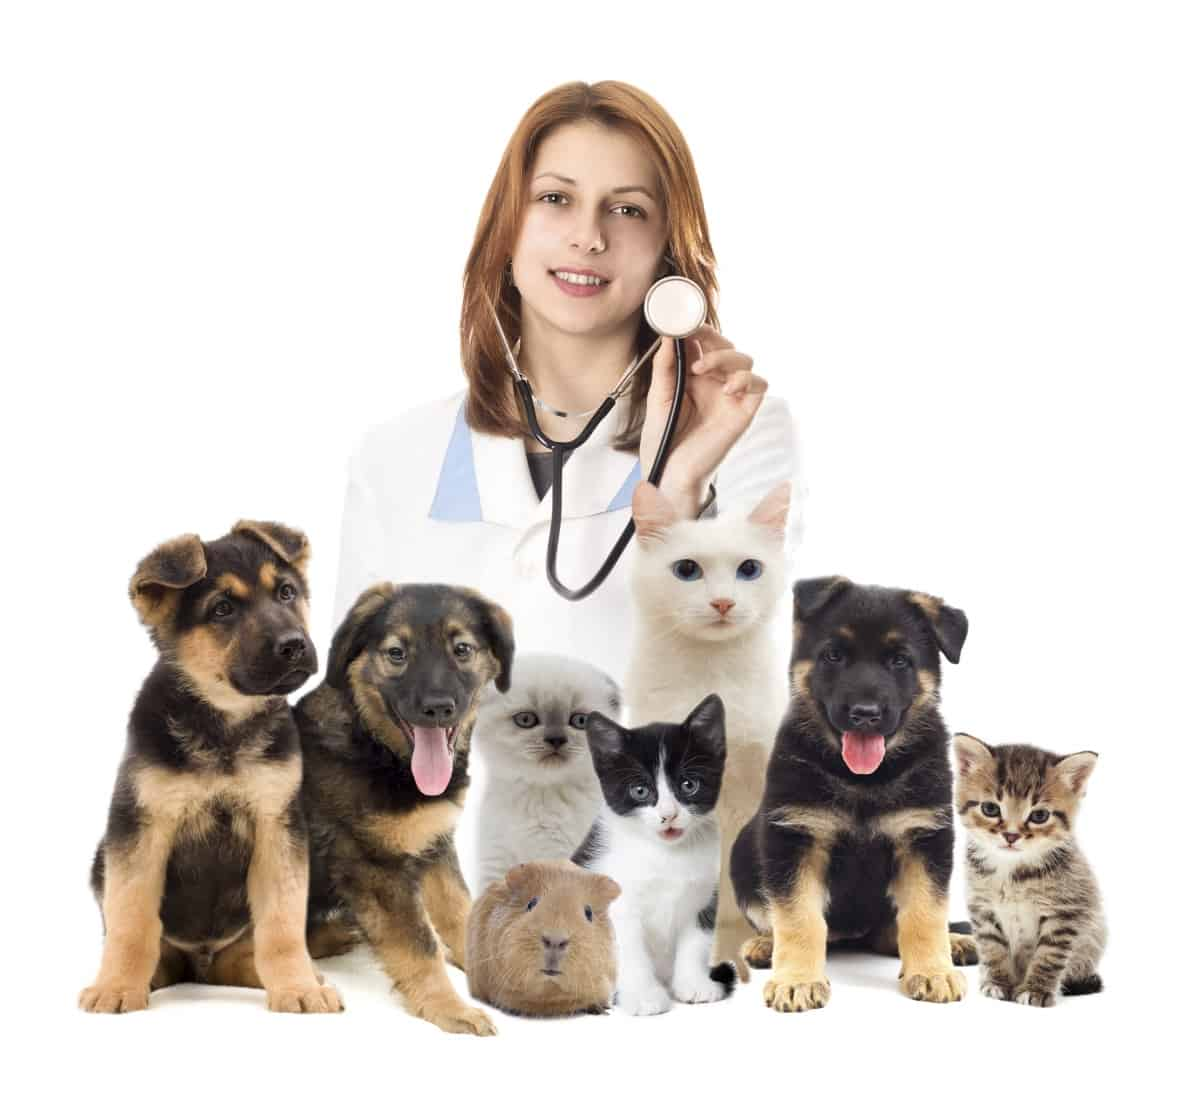 vet with dogs and cats